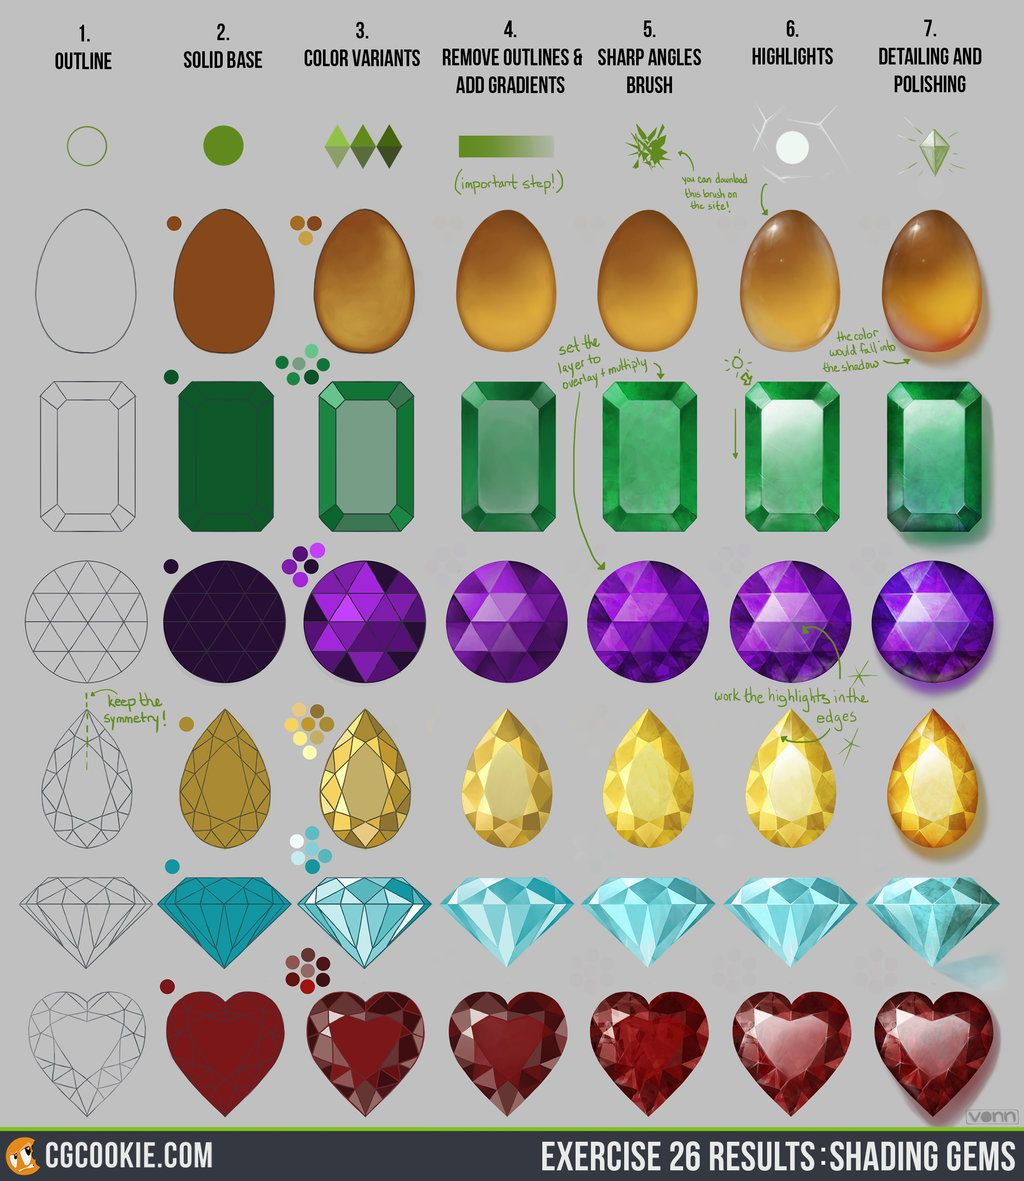 Exercise 26 Results: Shading Gems Step By Step By Cgcookieiantart On